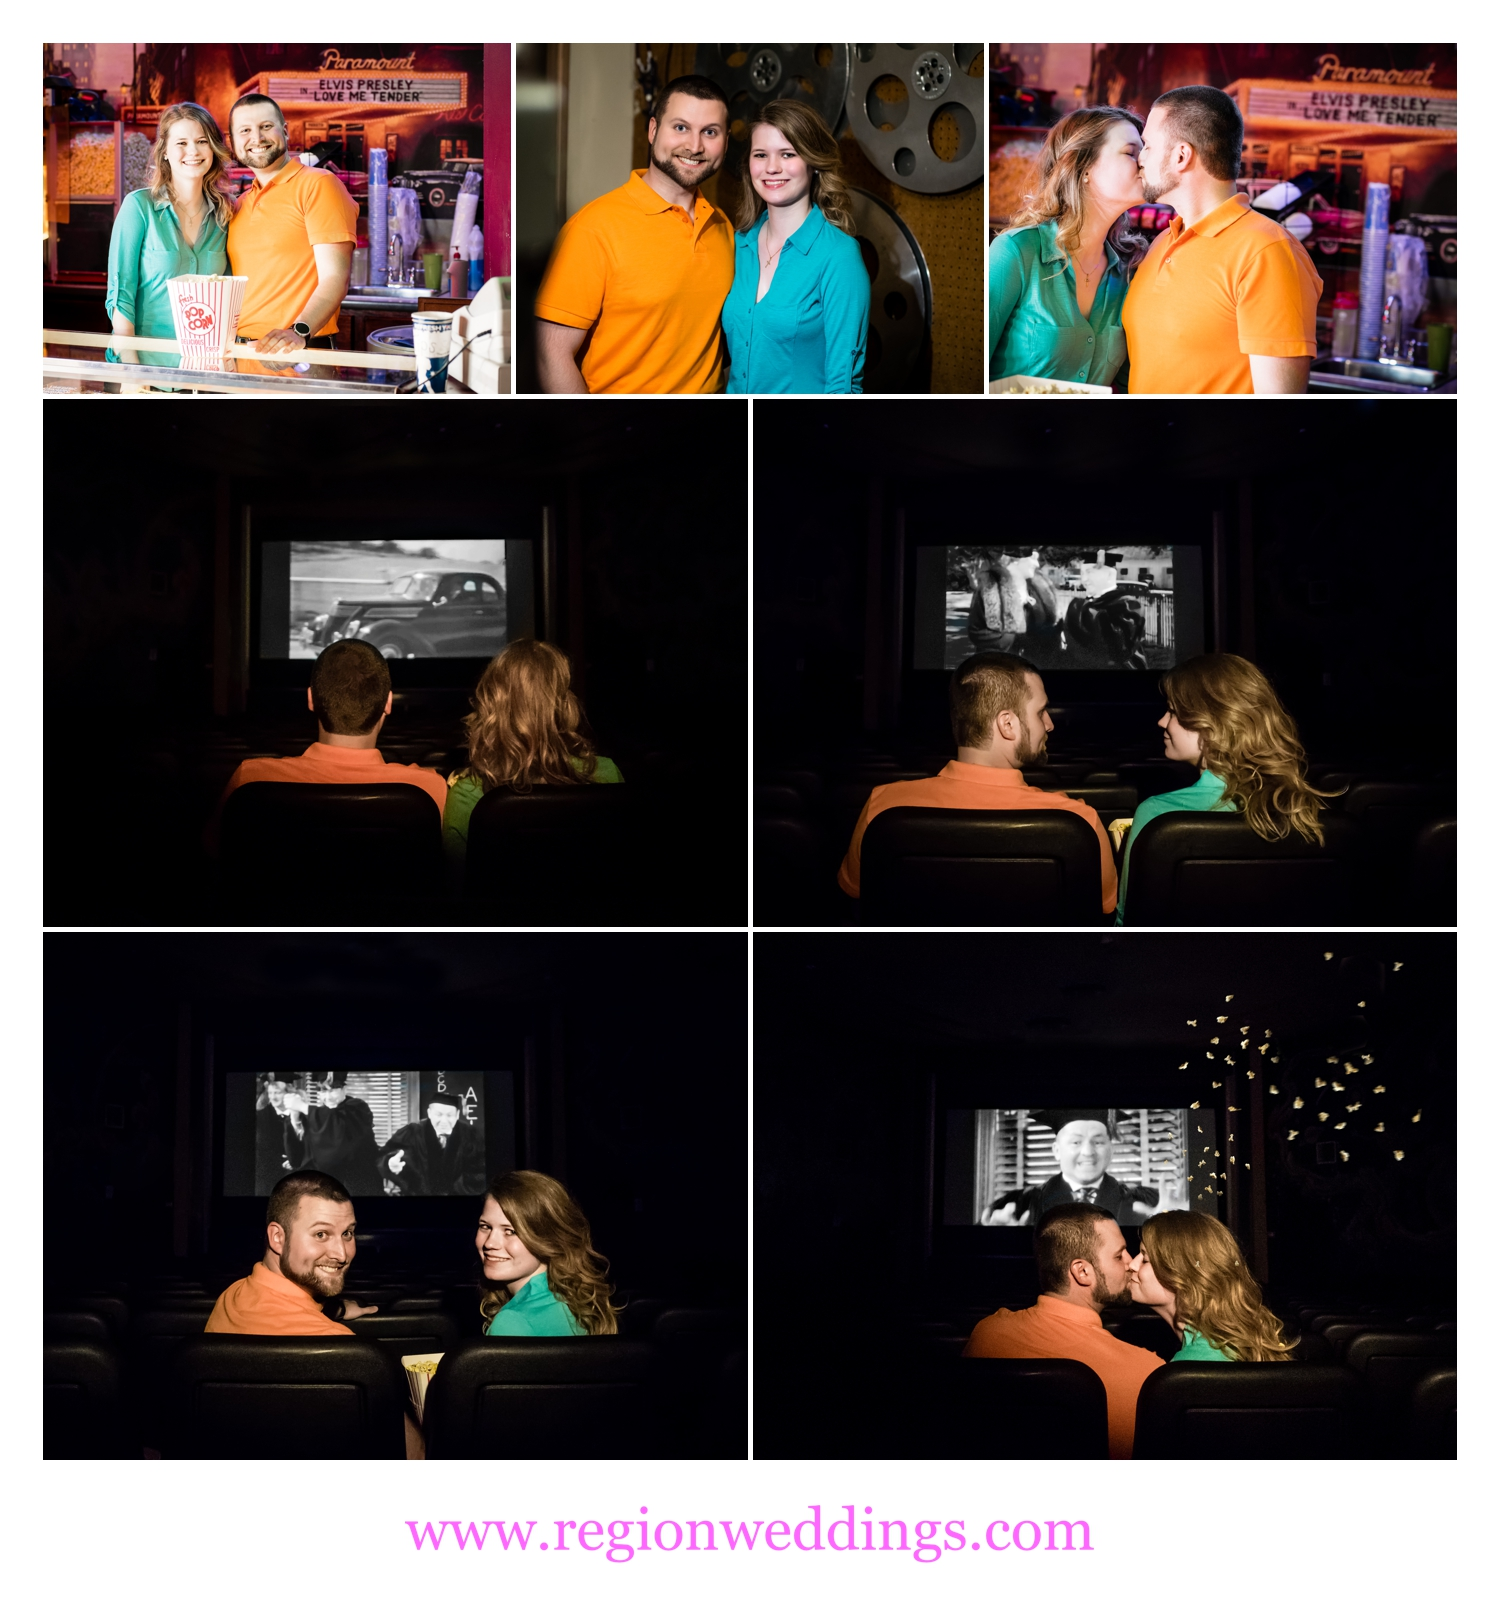 A movie themed engagement session photo collage.